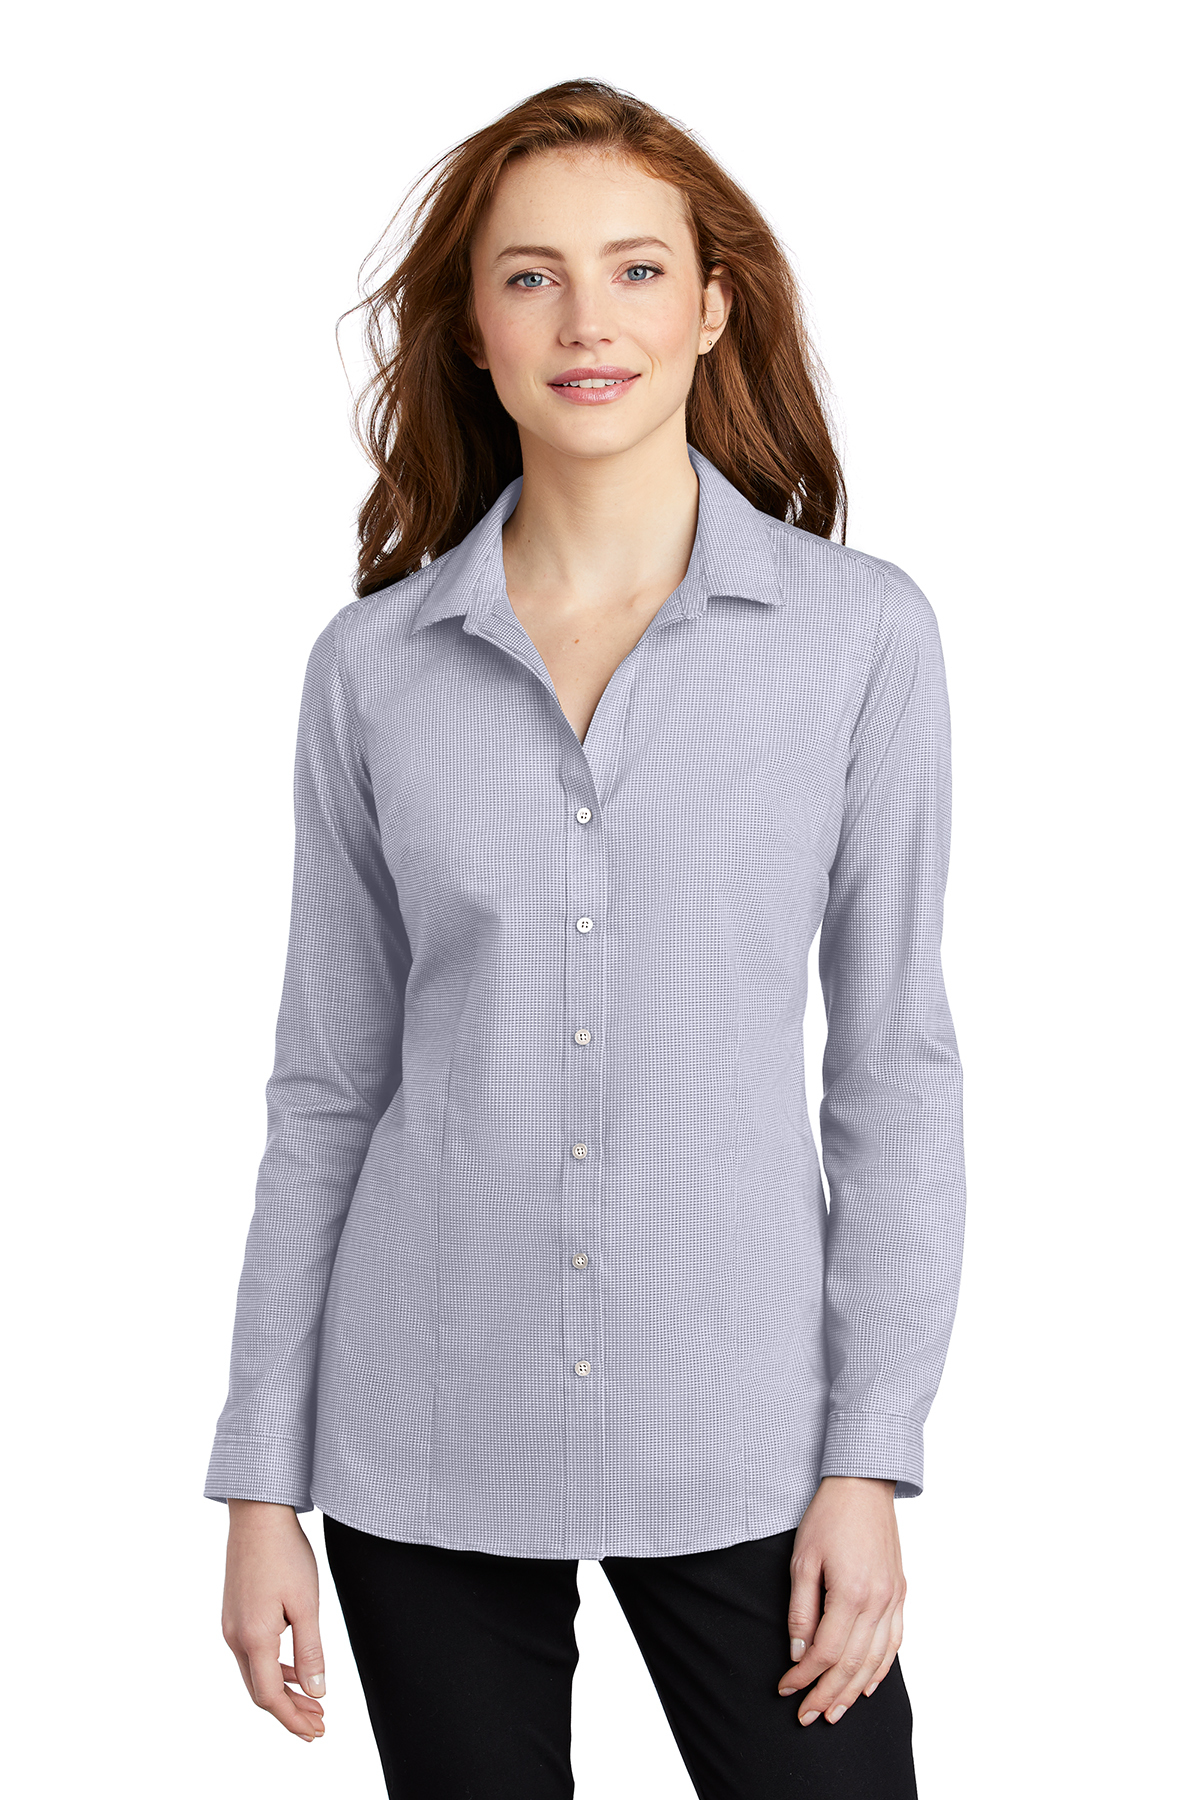 Port Authority LW645 - Ladies Pincheck Easy Care Shirt